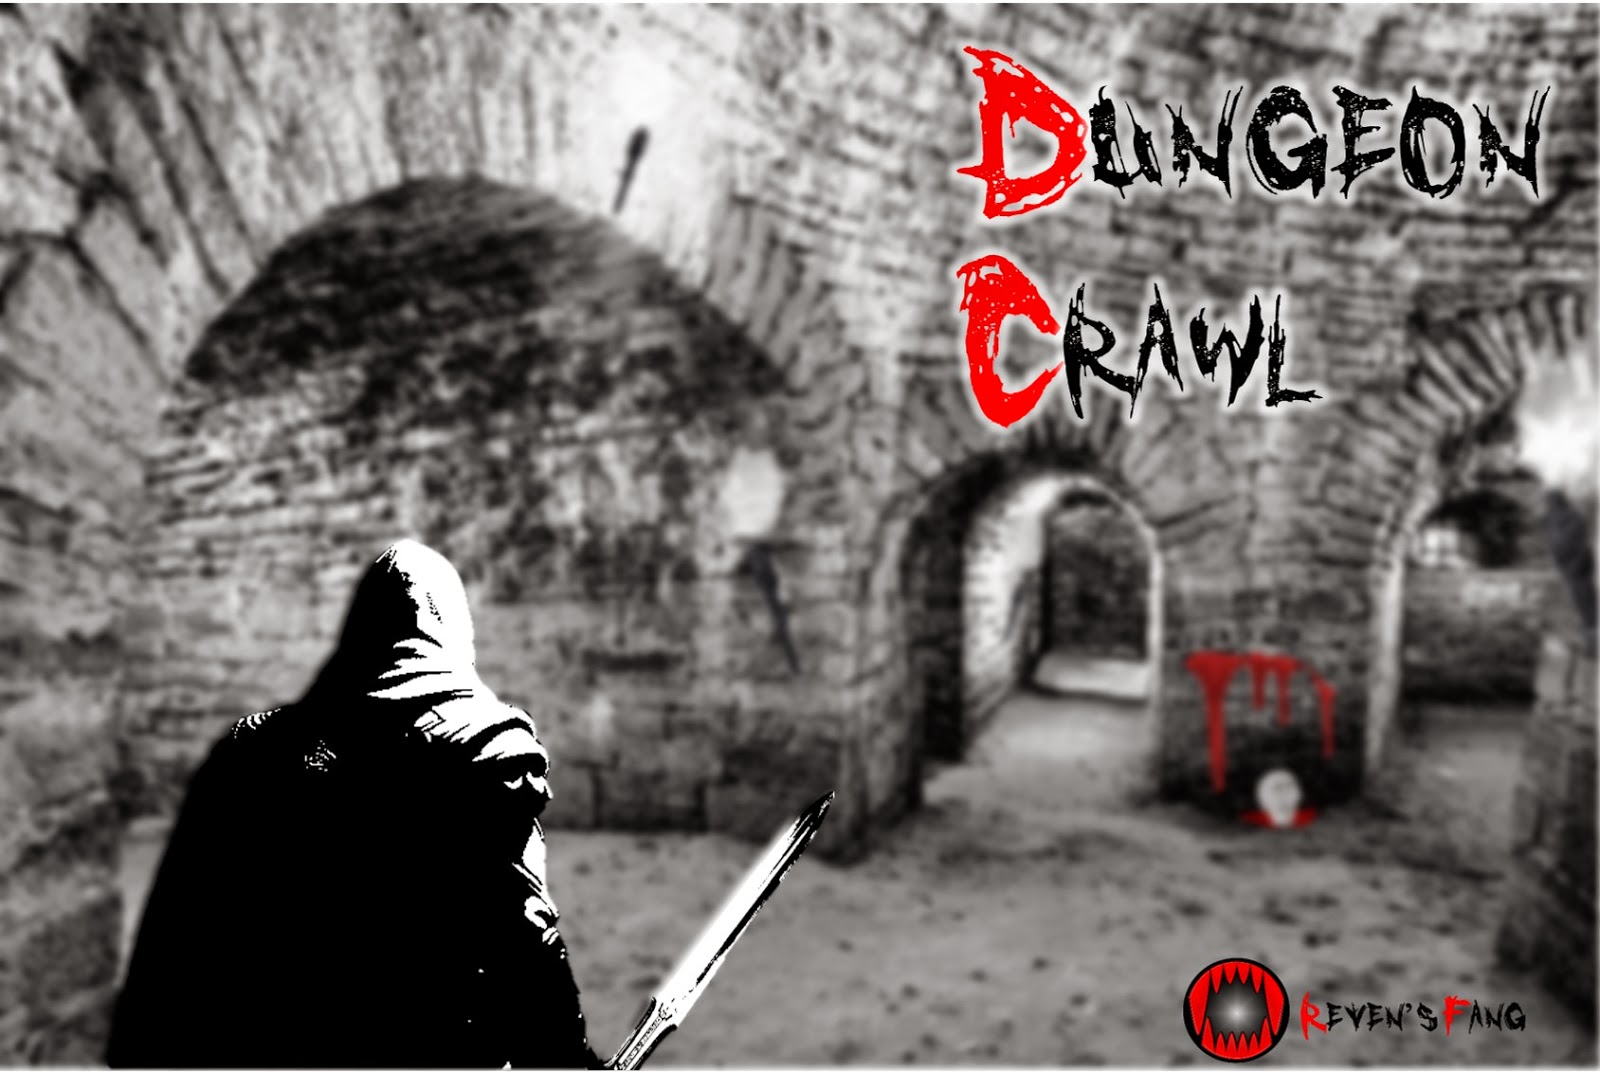 Art for the Dungeon Crawl series from www.revensfang.com